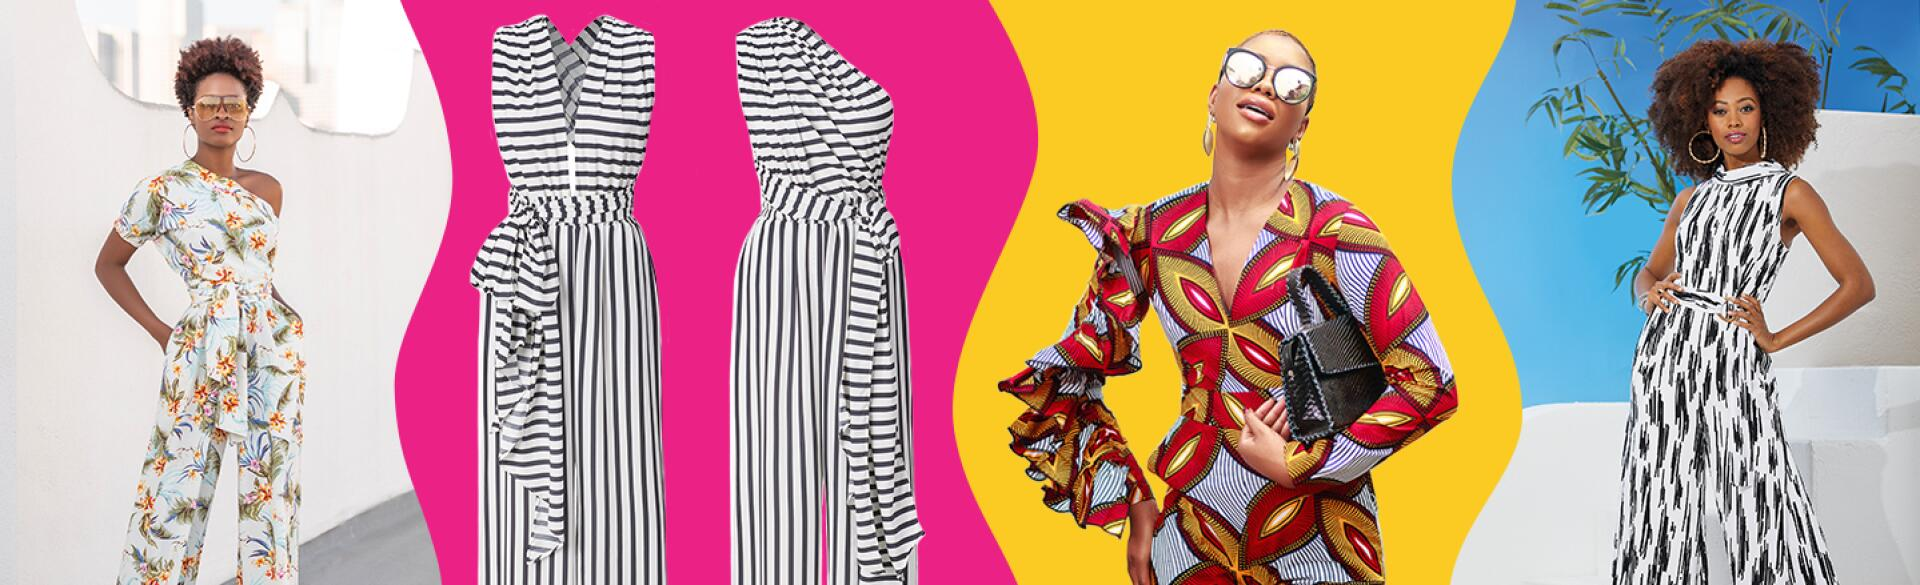 collage_of_jumpsuits_for_women_1440x584_v1.jpg